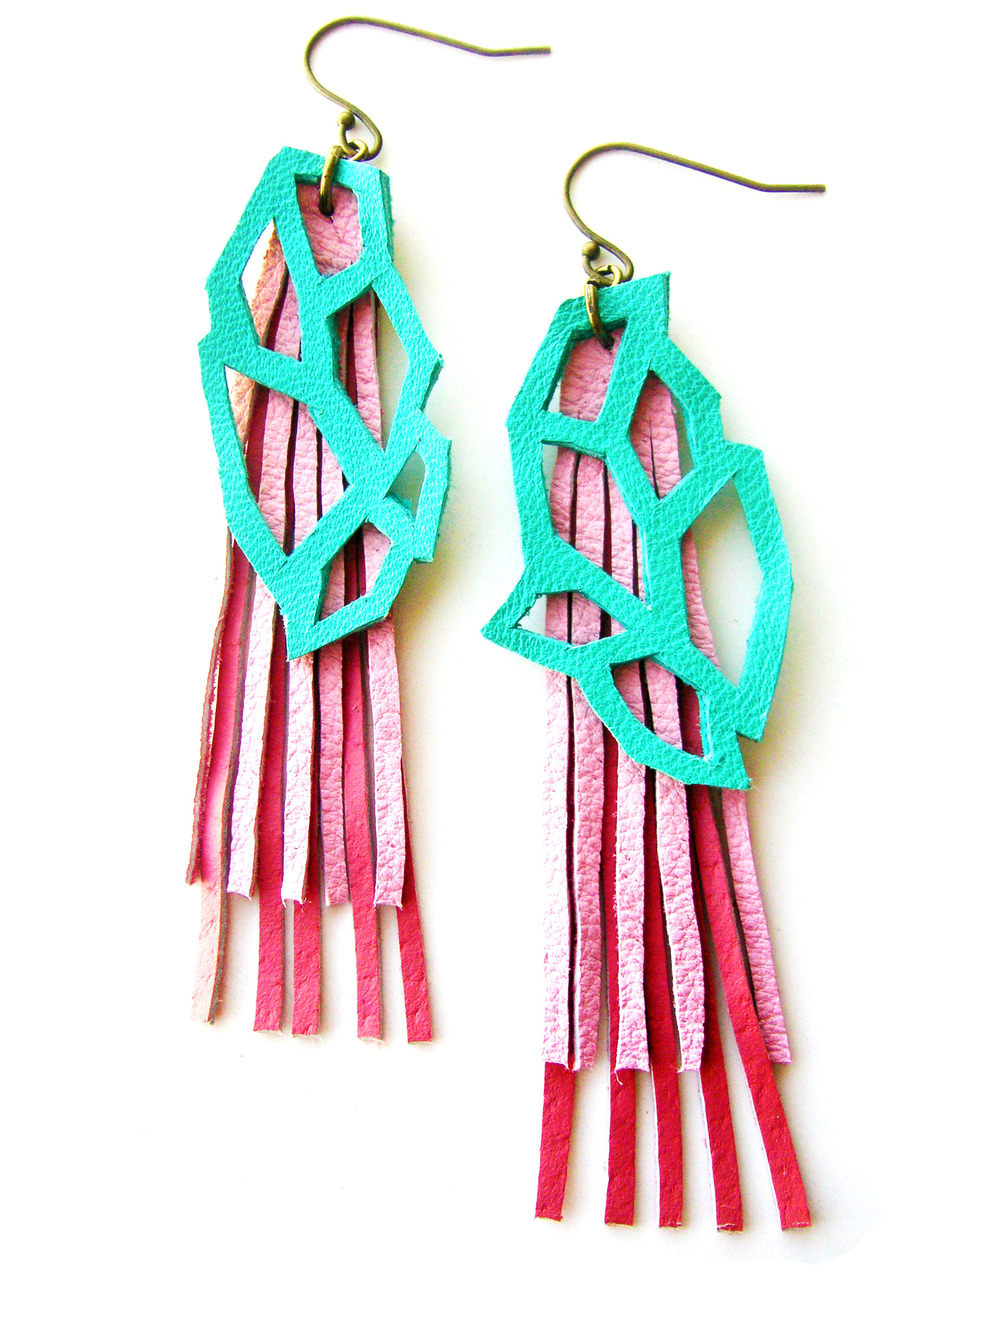 Geometric Leather Earrings Hexagons in Teal and Pink 4.jpg